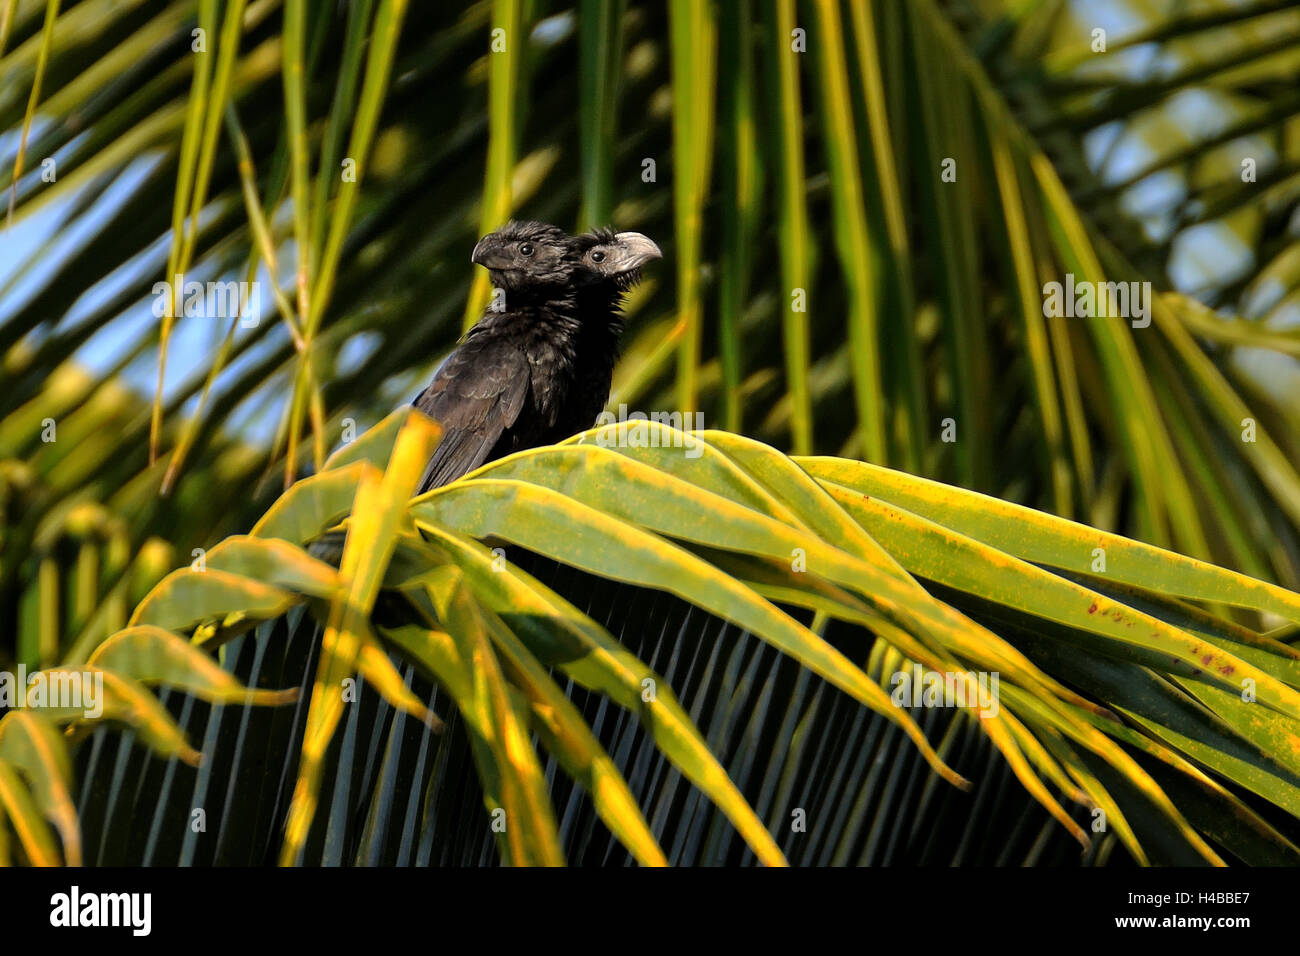 Groove-billed ani (crotophaga sulcirostris), two-headed animal, peculiar, Corozal District, Belize - Stock Image